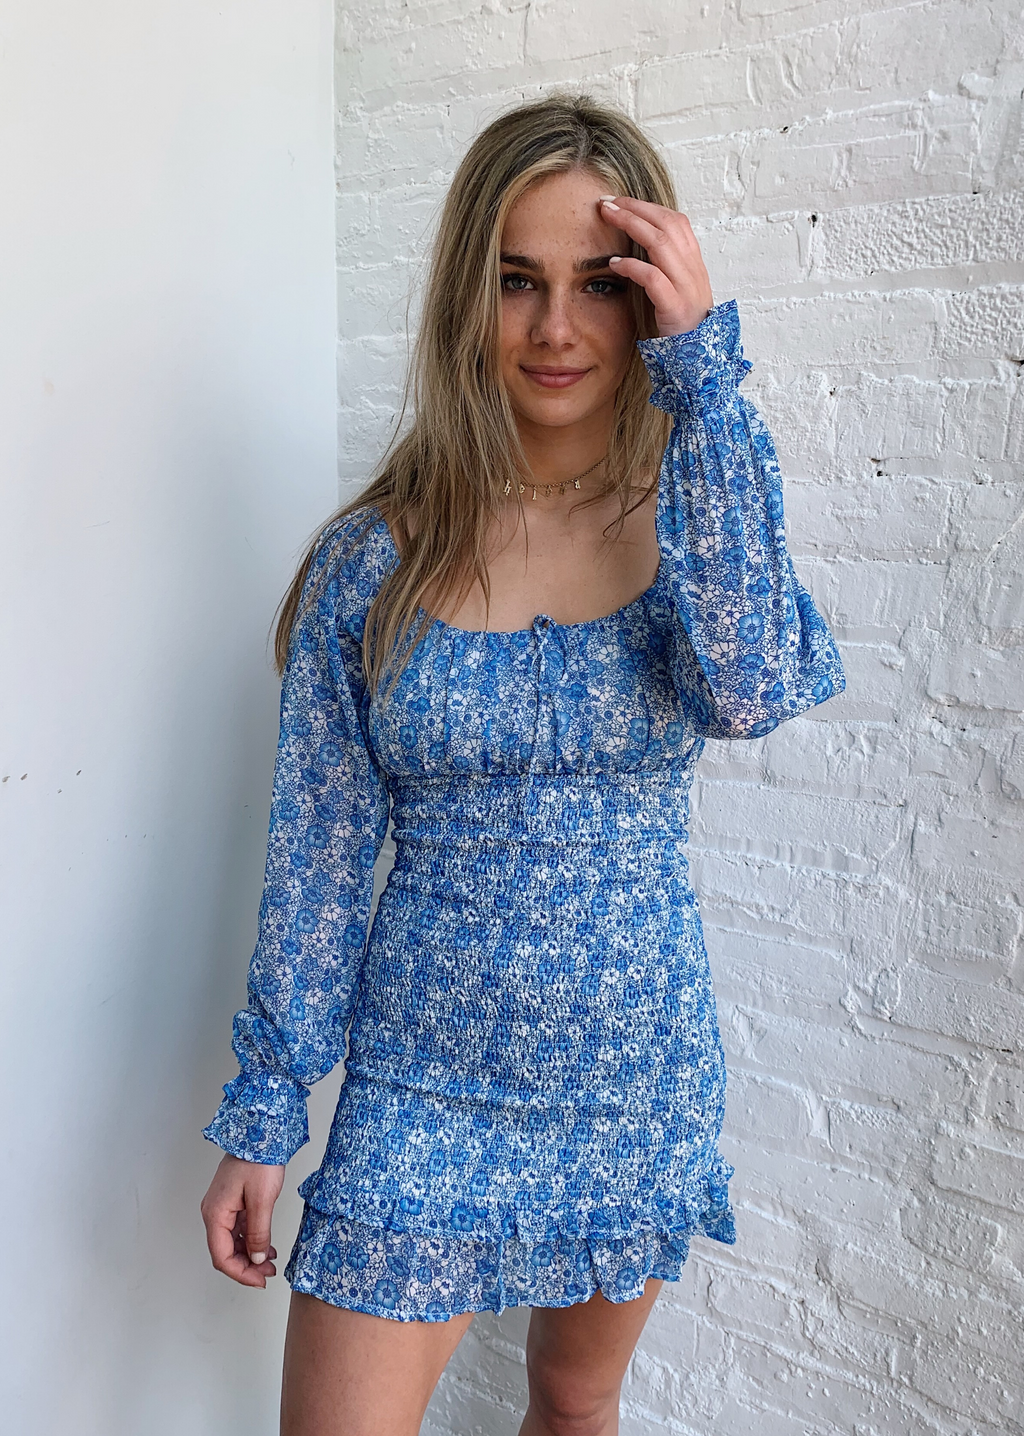 Met You In The Summer Dress ★ Blue Floral - Rock N Rags